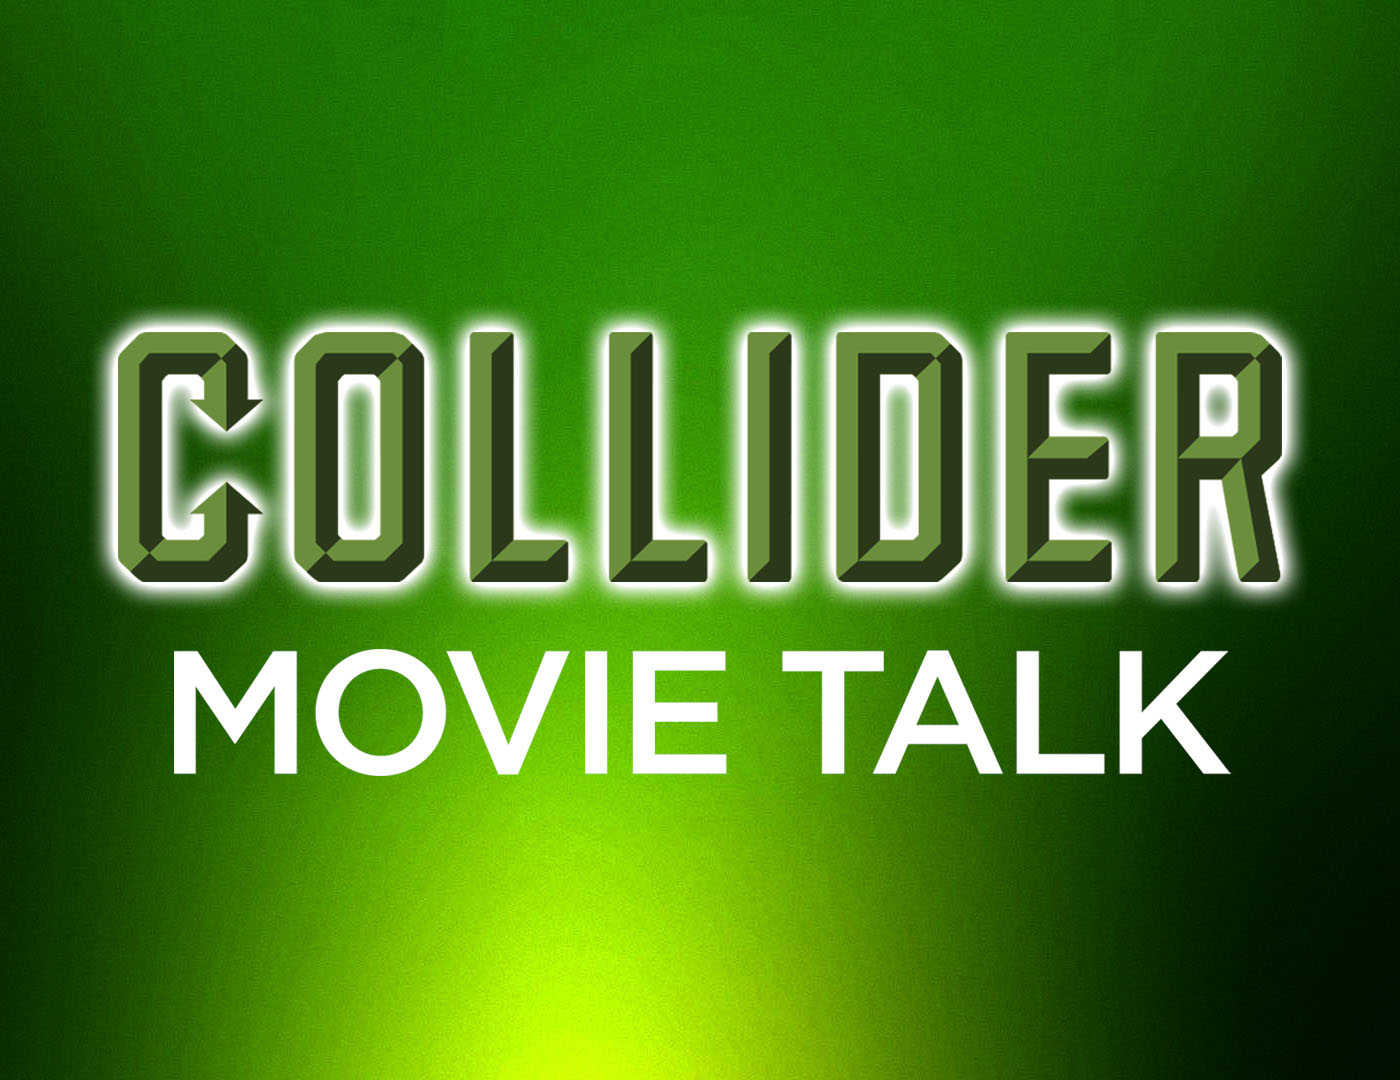 Black Panther Begins Production - Collider Movie Talk